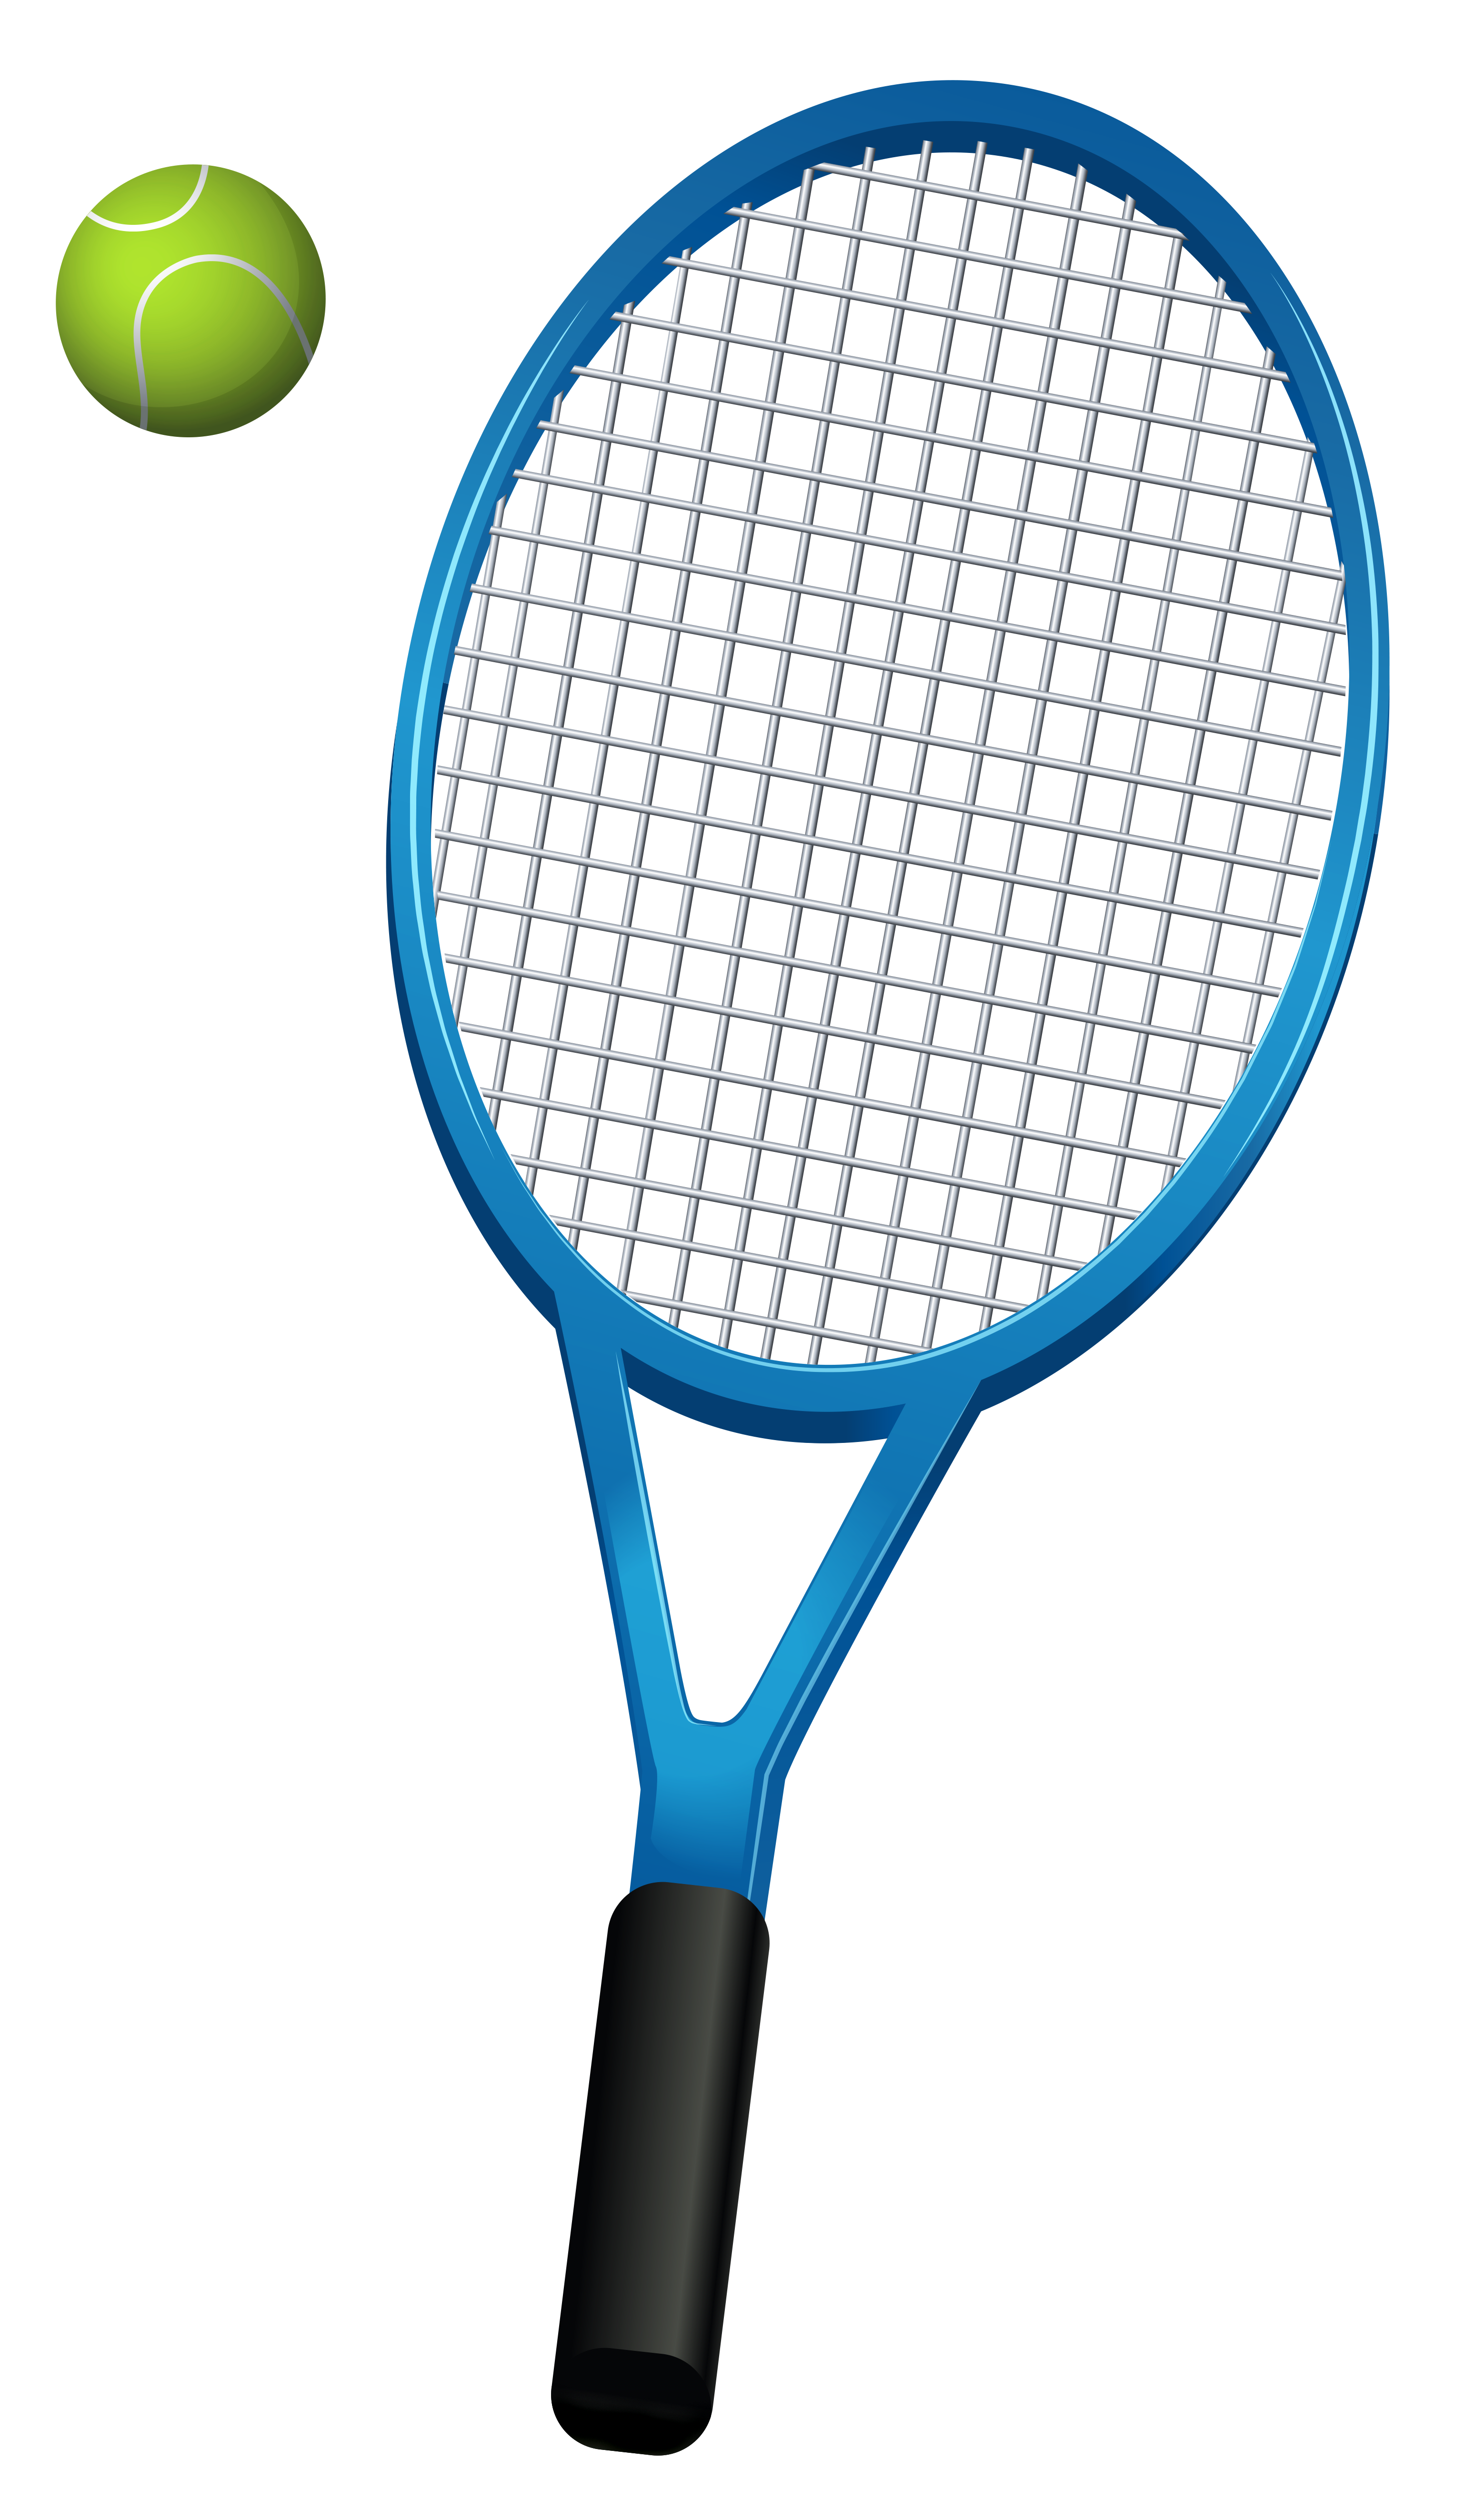 Tennis racket hitting ball clipart